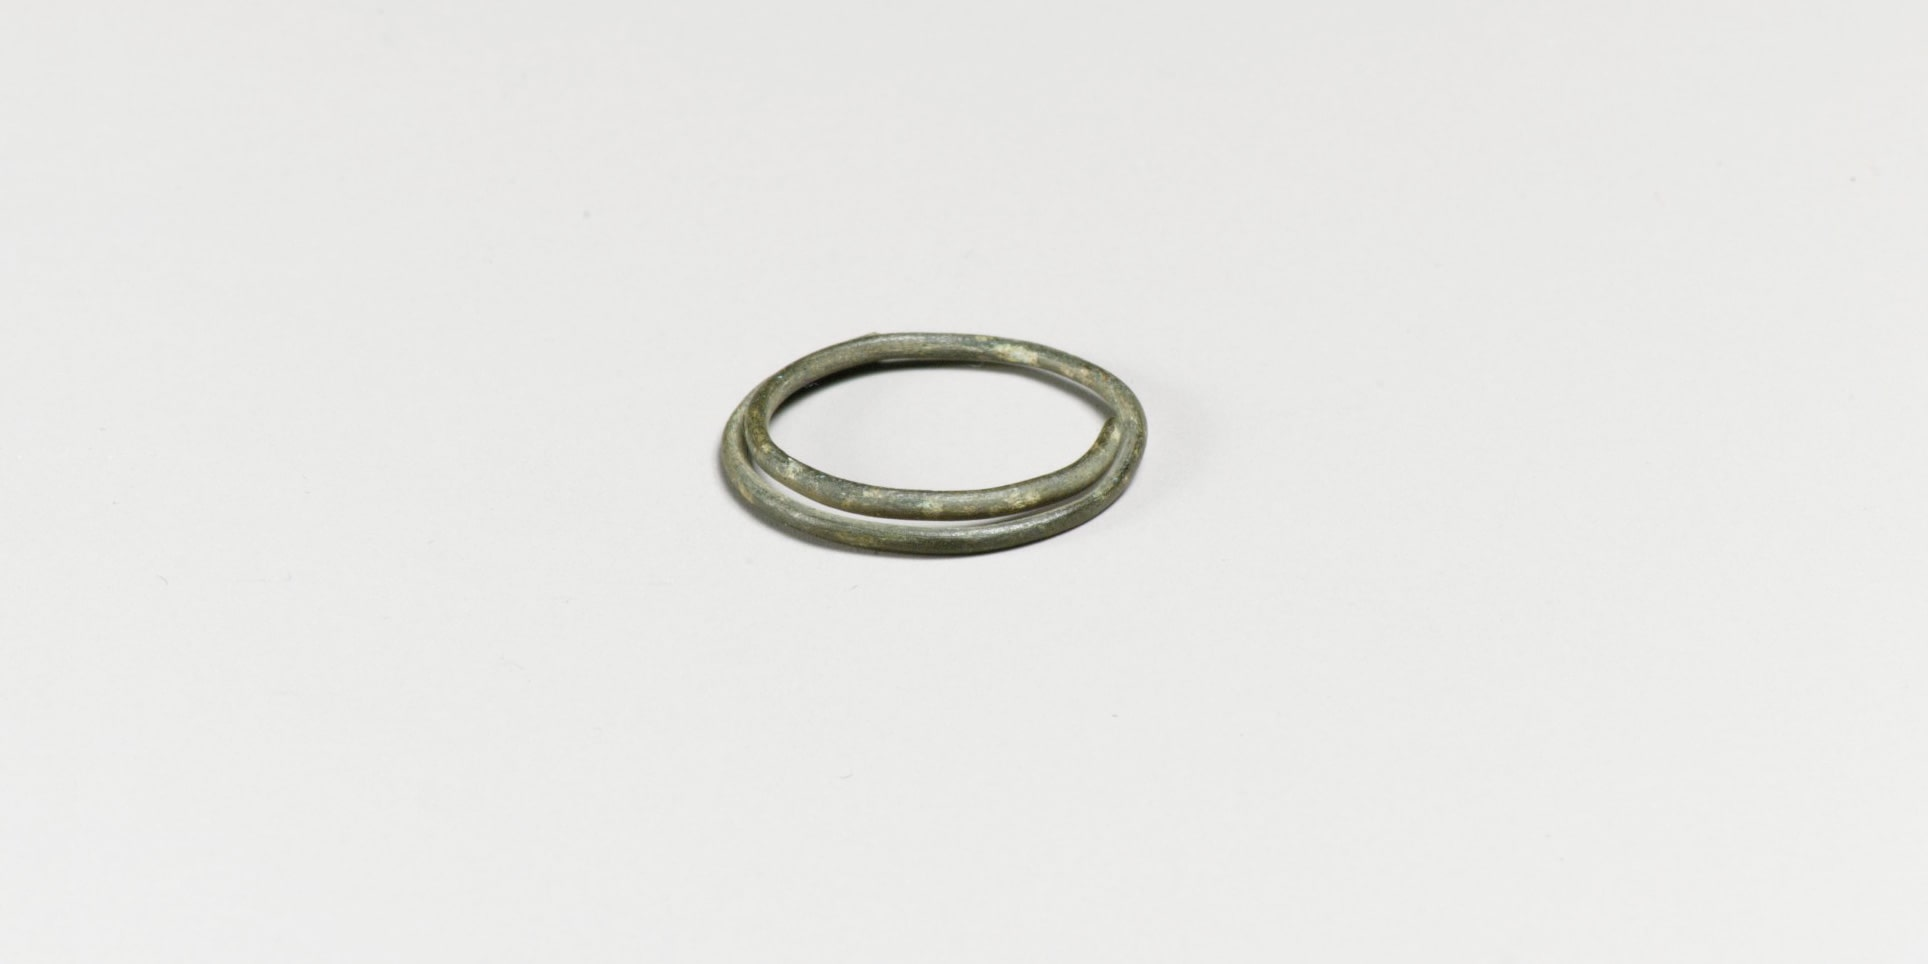 A photograph of another bronze spiral. The wire is round and the spiral comprises a loop and a half.